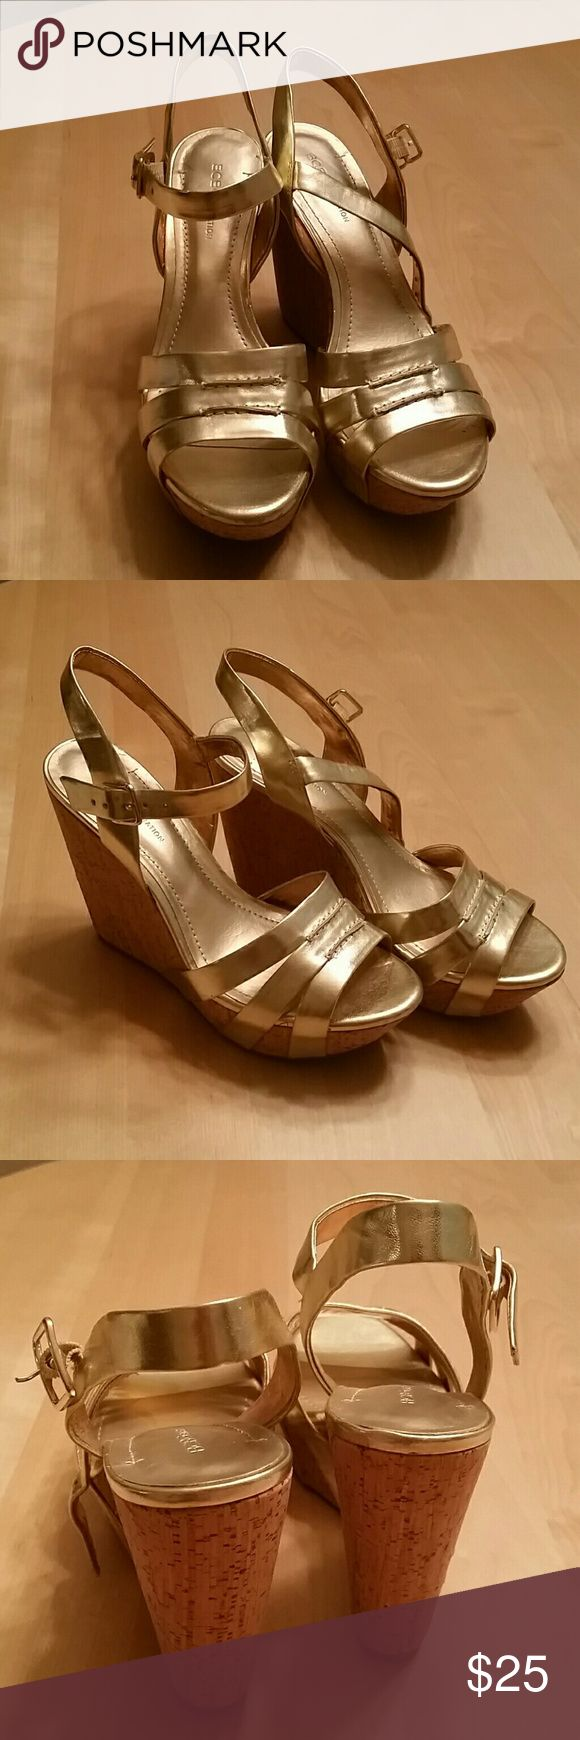 BCBG gold wedge sandals, size 9 BCBG gold, strappy, wedge sandals, size 9. Cork wedge heel, gold straps and buckle. BCBGeneration Shoes Wedges